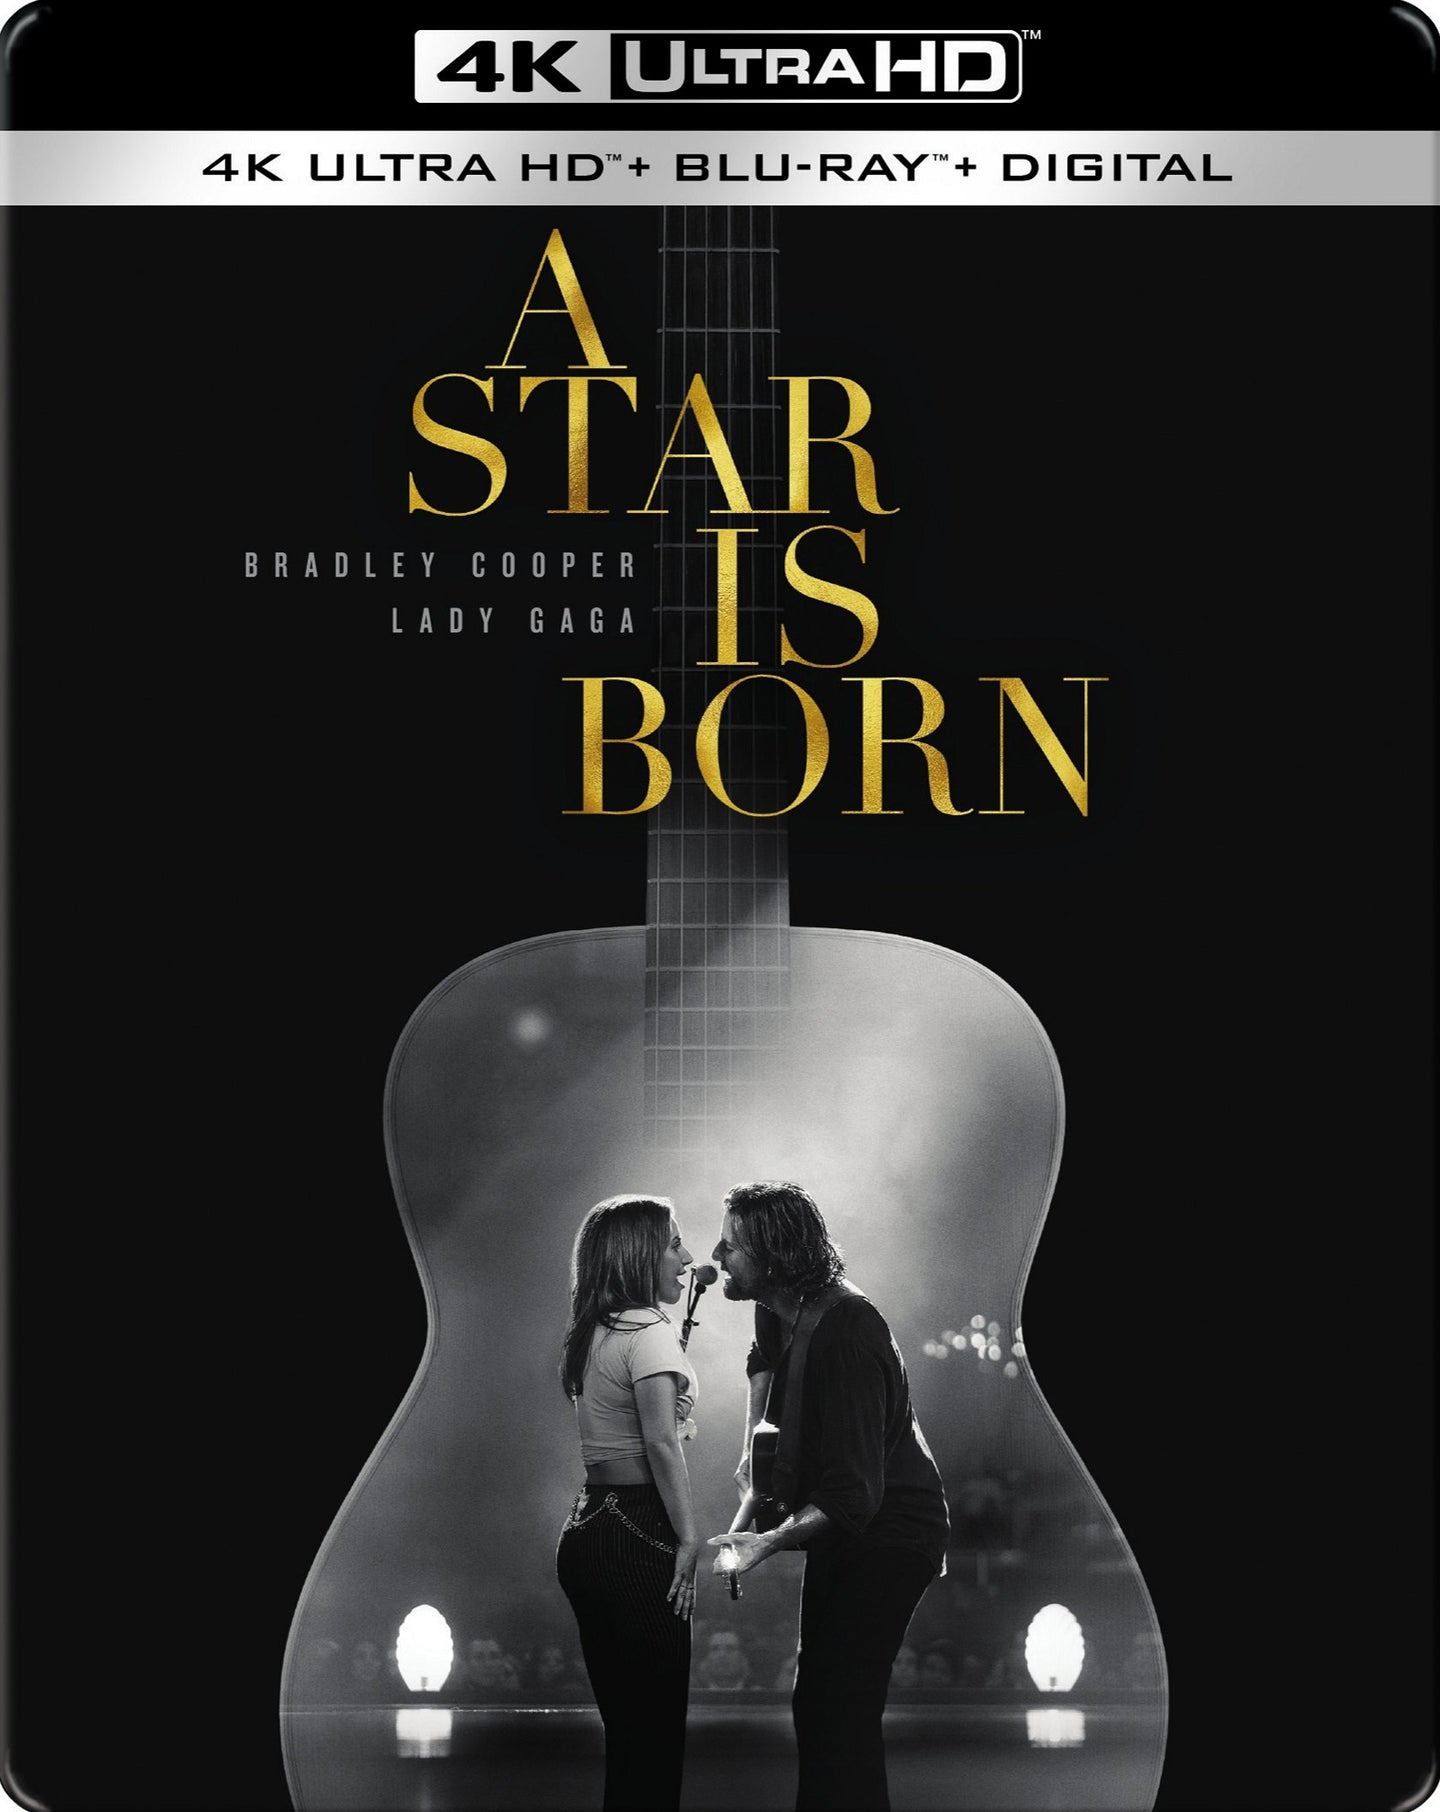 A Star Is Born (2018) Vudu or Movies Anywhere 4K code